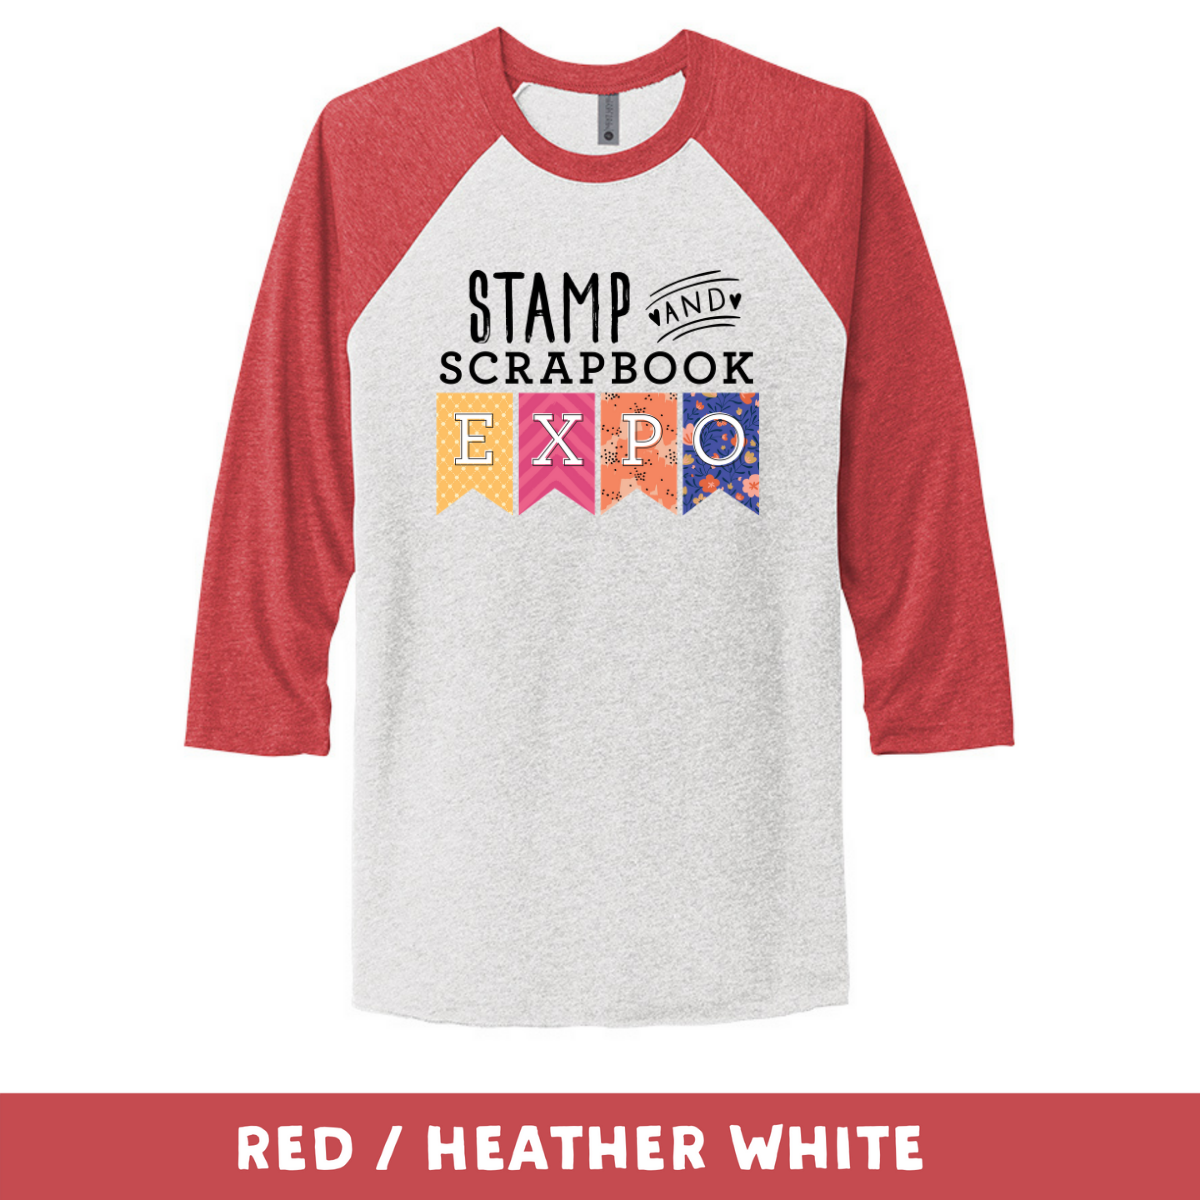 Red Heather White - Unisex Tri-Blend 3/4 Sleeve Raglan Tee - Stamp & Scrapbook Expo Color Logo